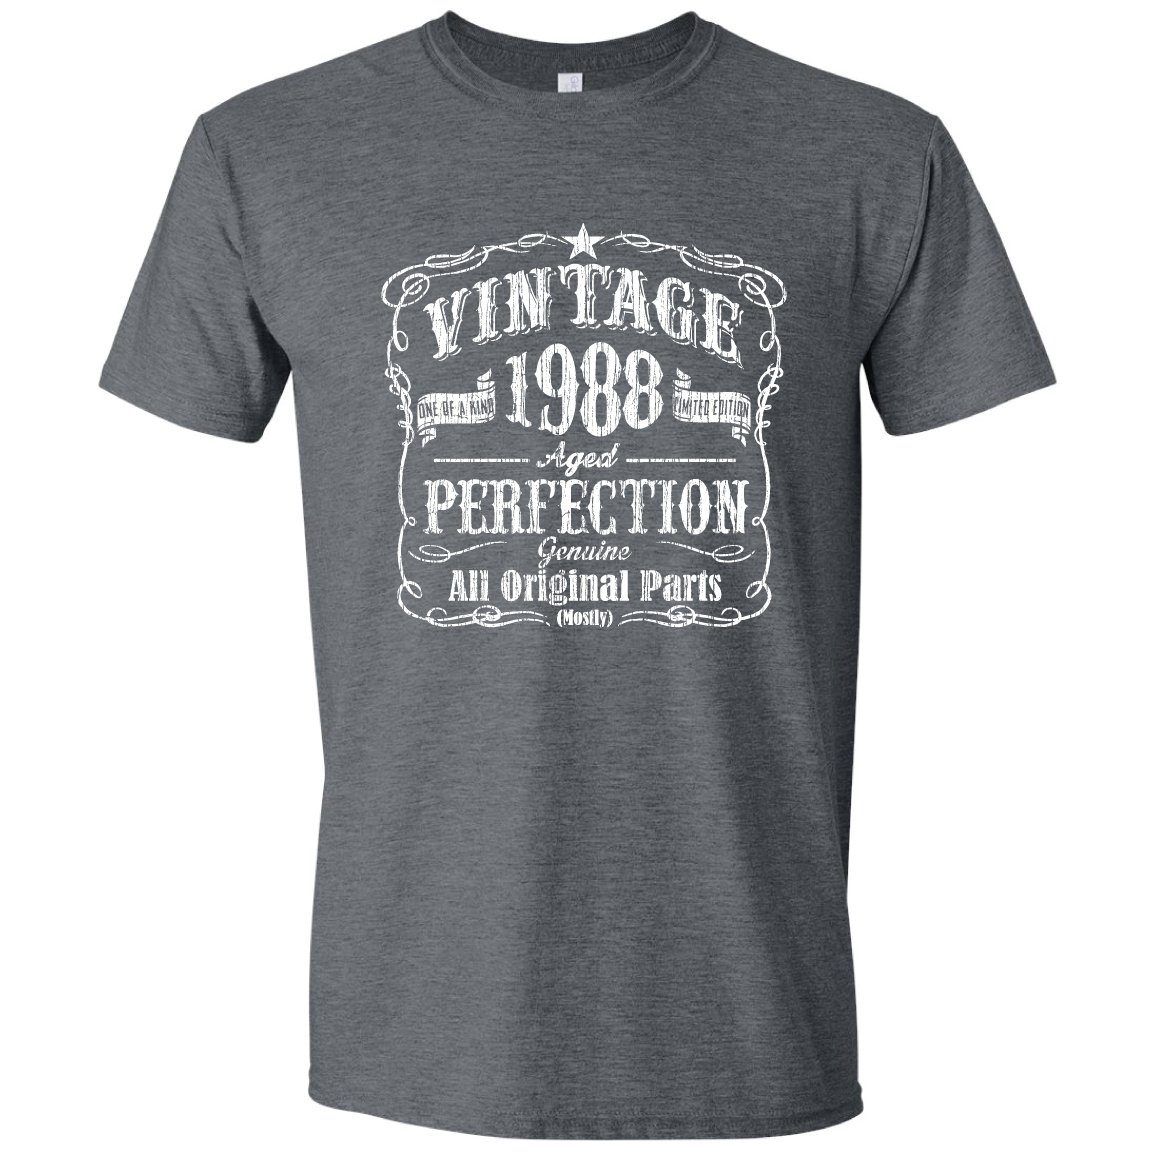 Born in 88 Birthday Shirt, Over The Hill, Bday Shirt for him, Vintage, Black, XL